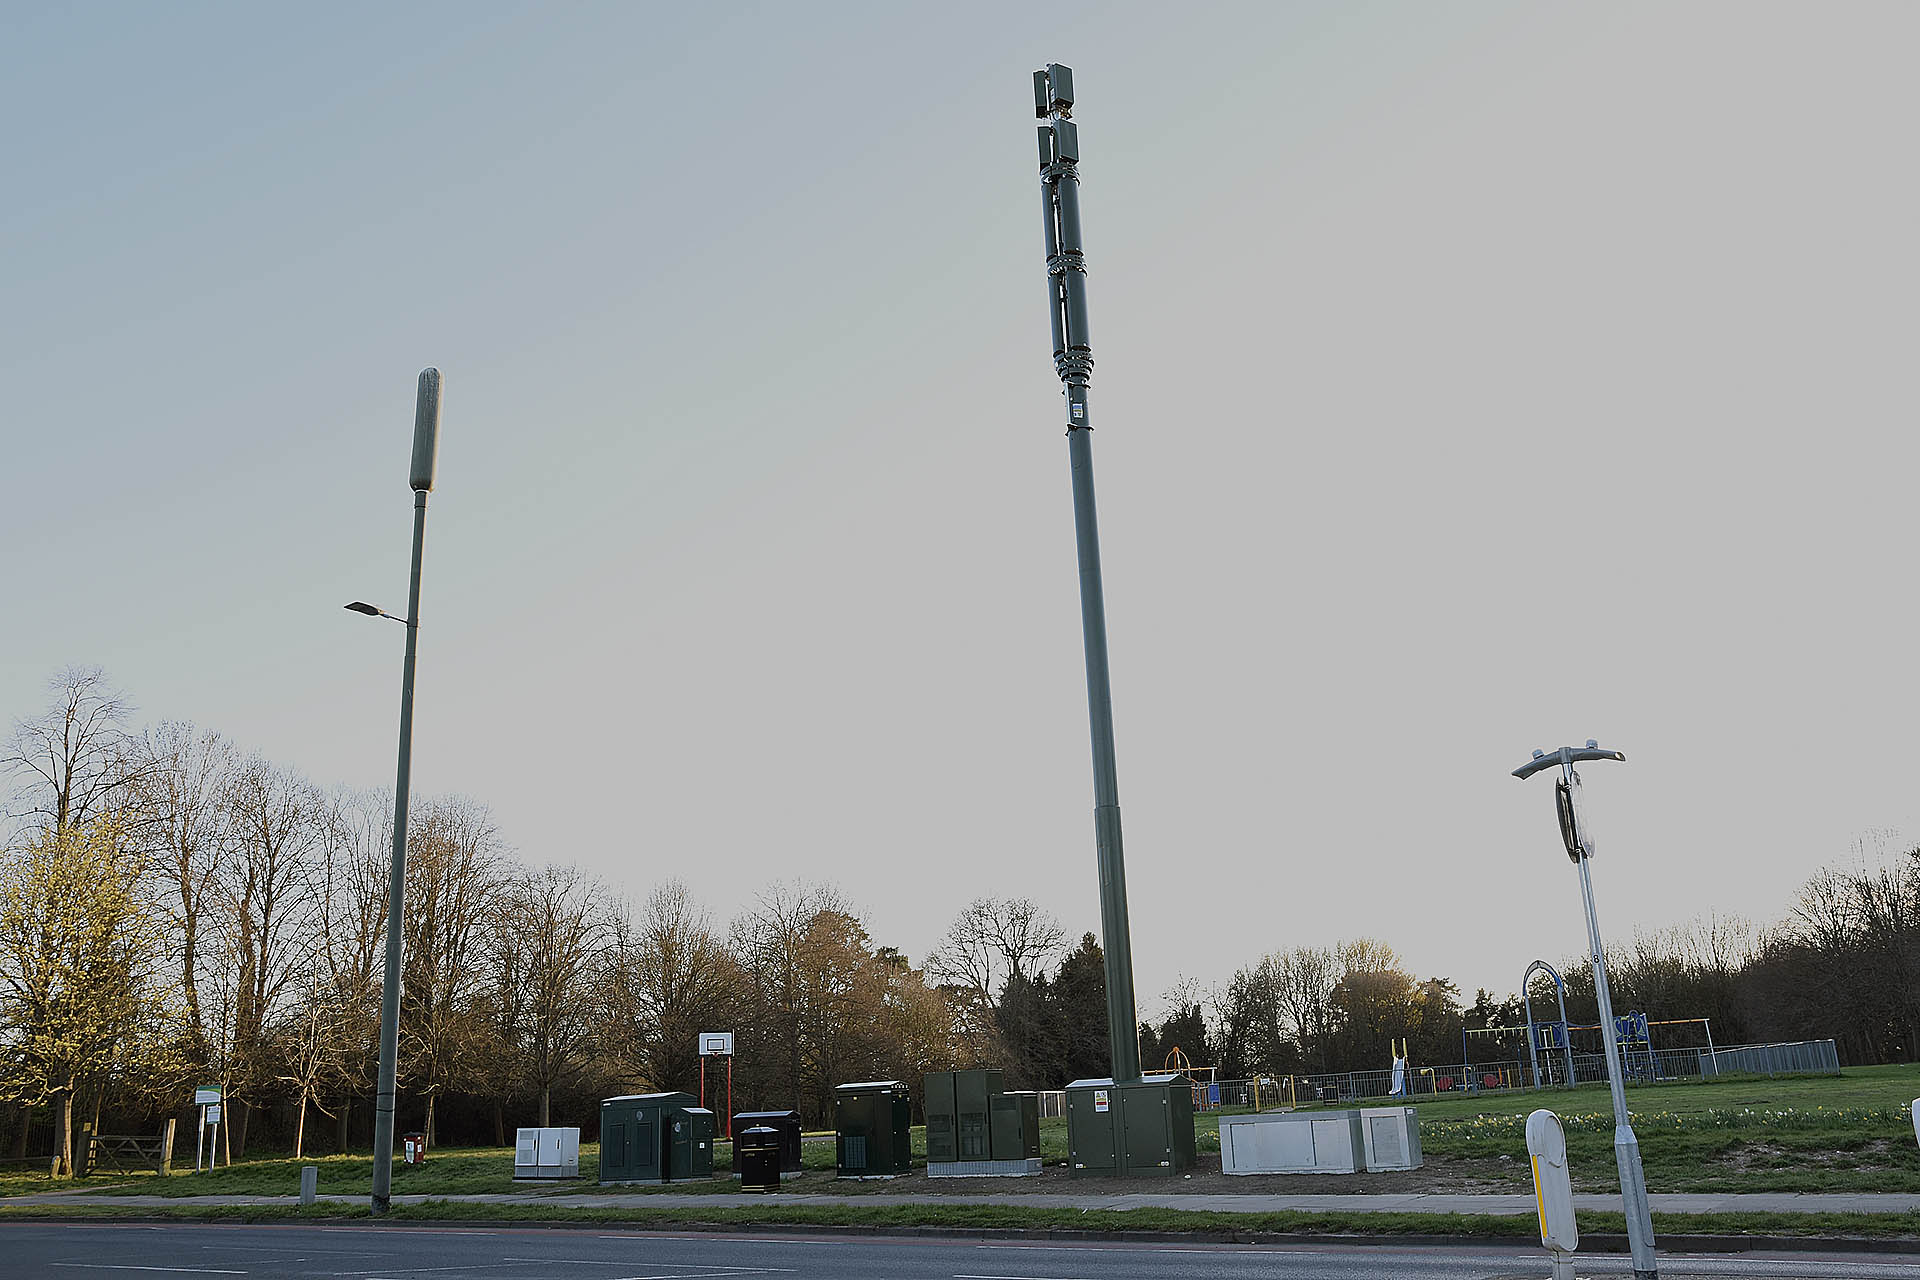 New 5G Masts in Grovehill